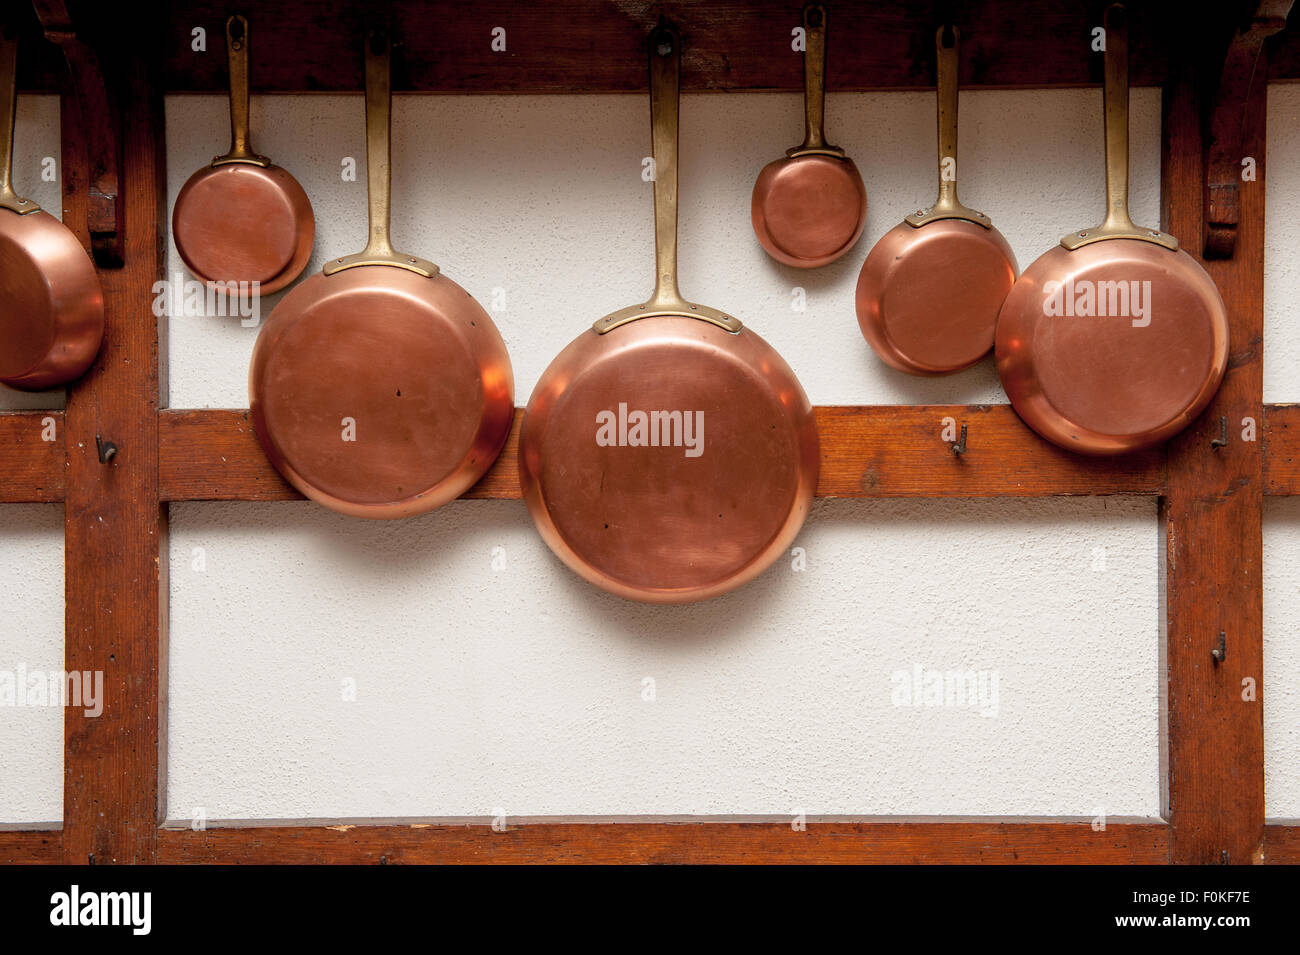 row of vintage copper pans different size hung on wooden shelf in kitchen vertical frame